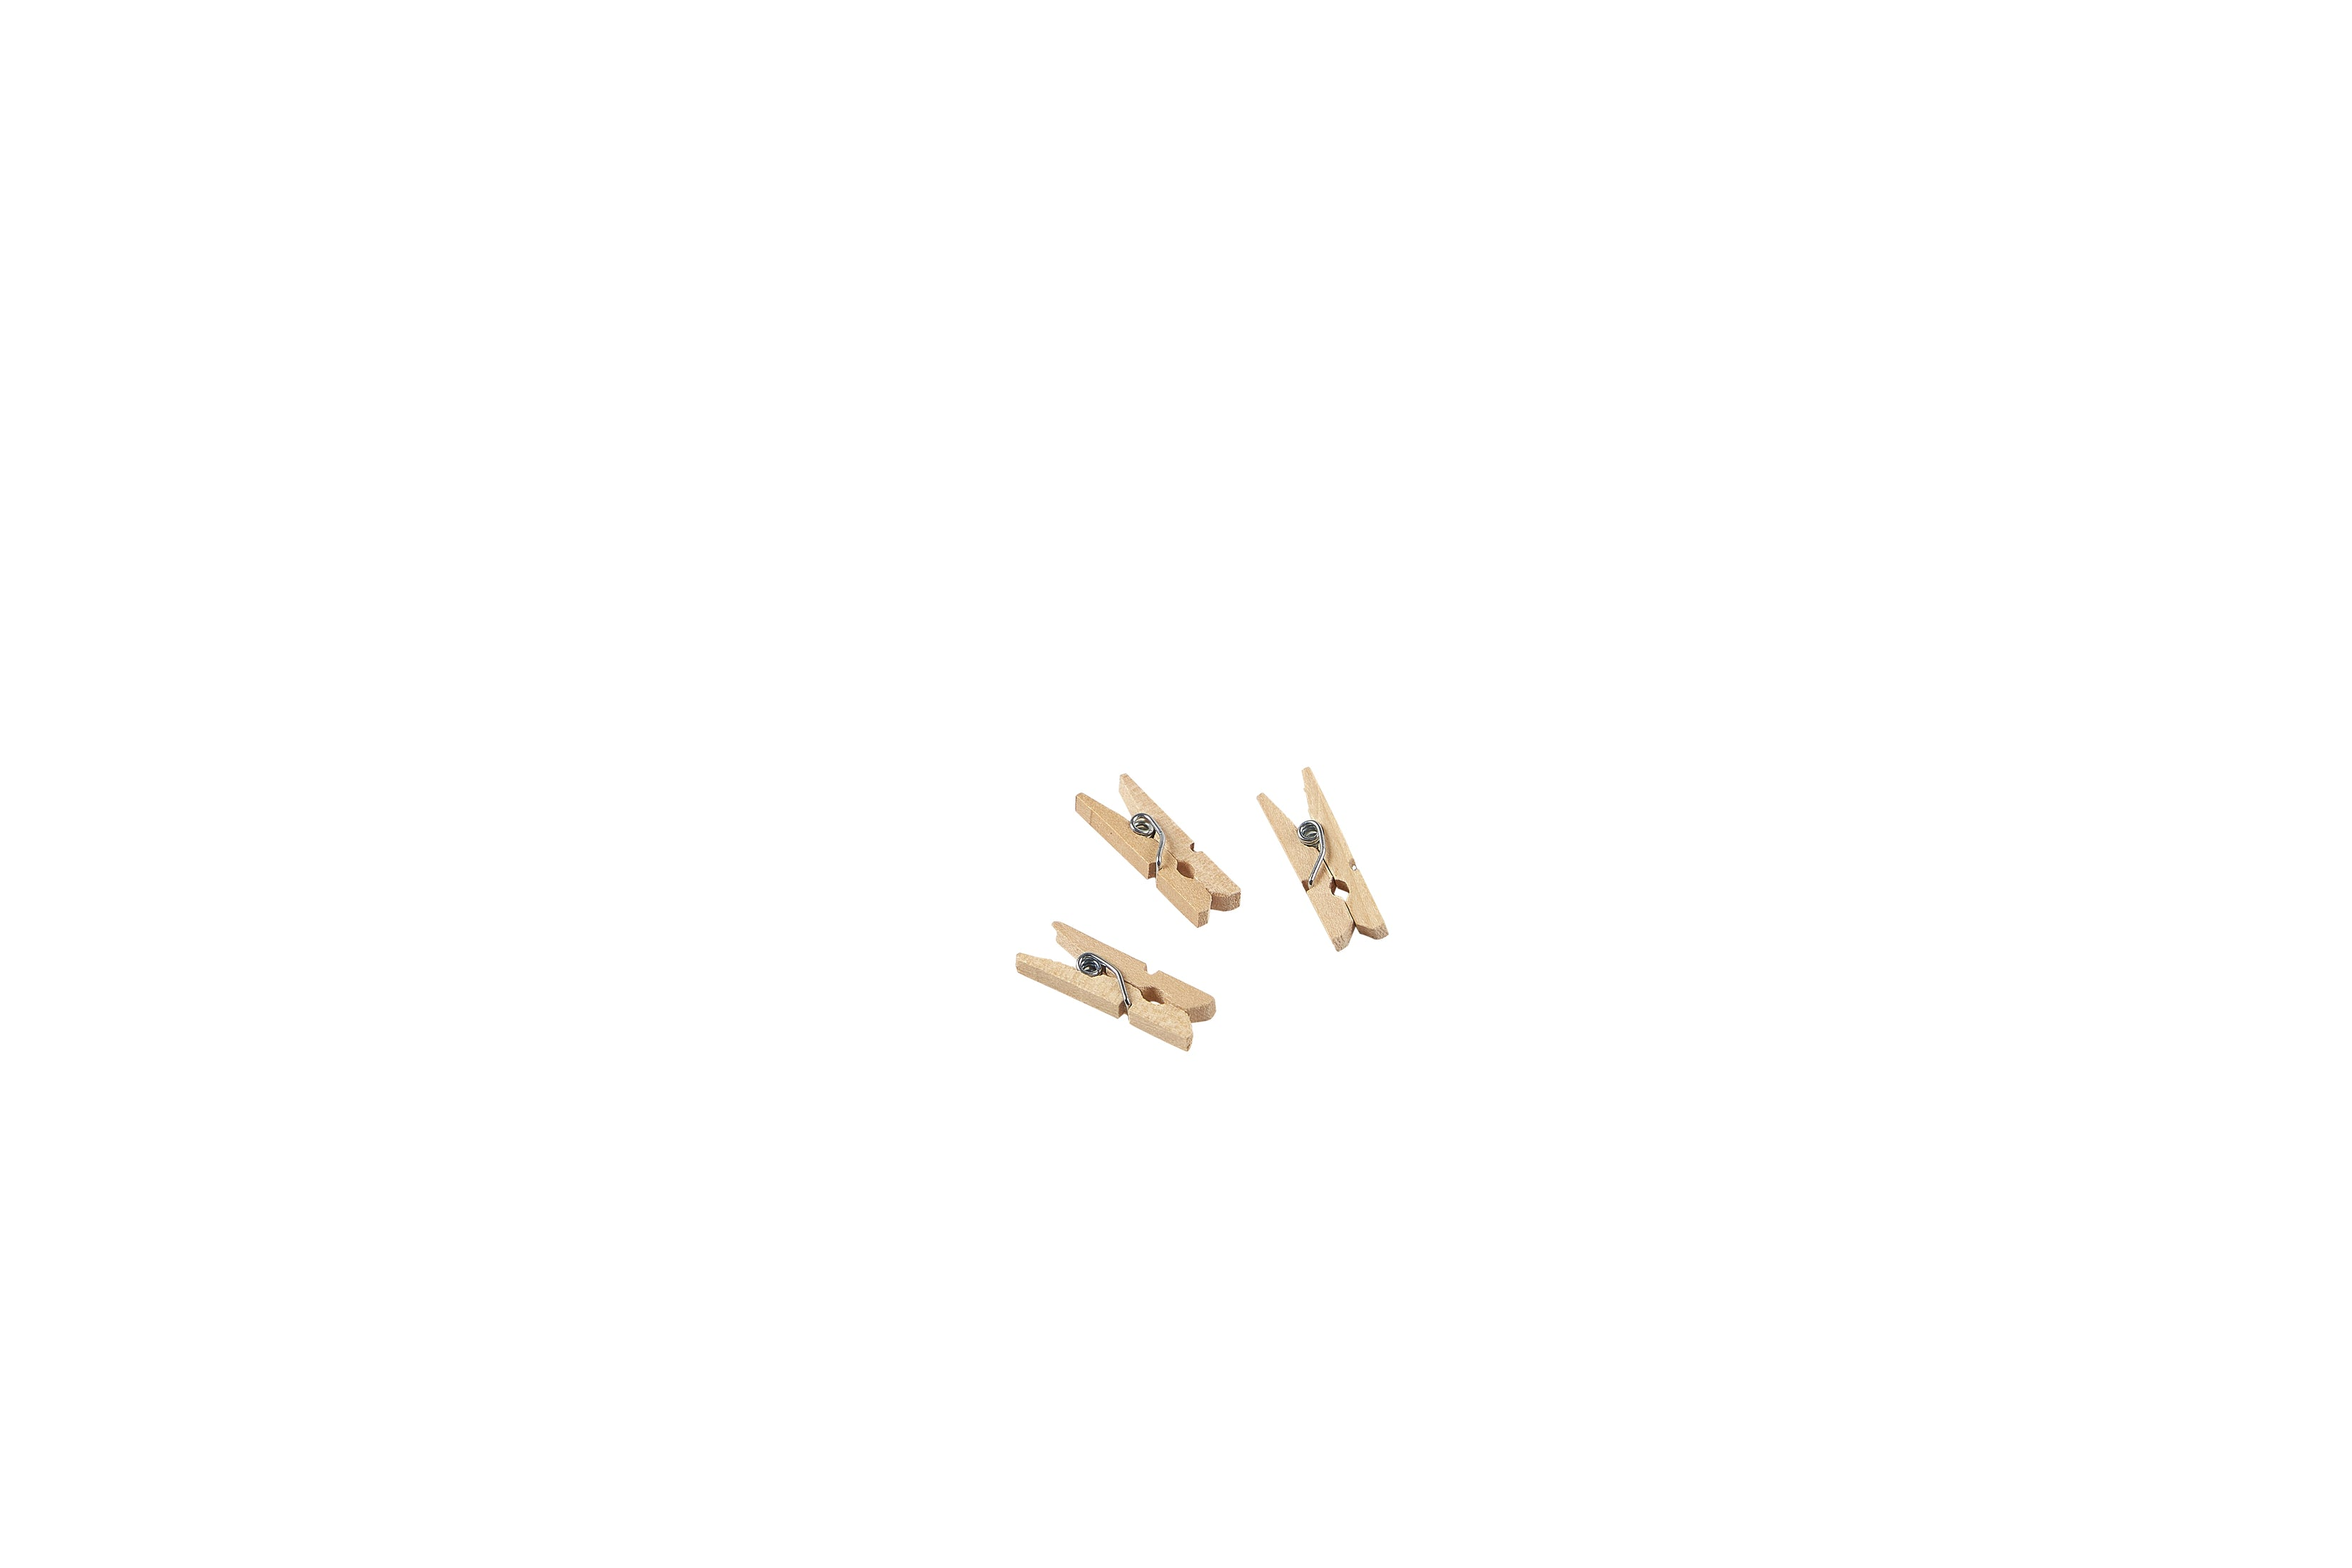 "Miniature Wooden Pegs 2.5cm/1""  (1000pcs)"